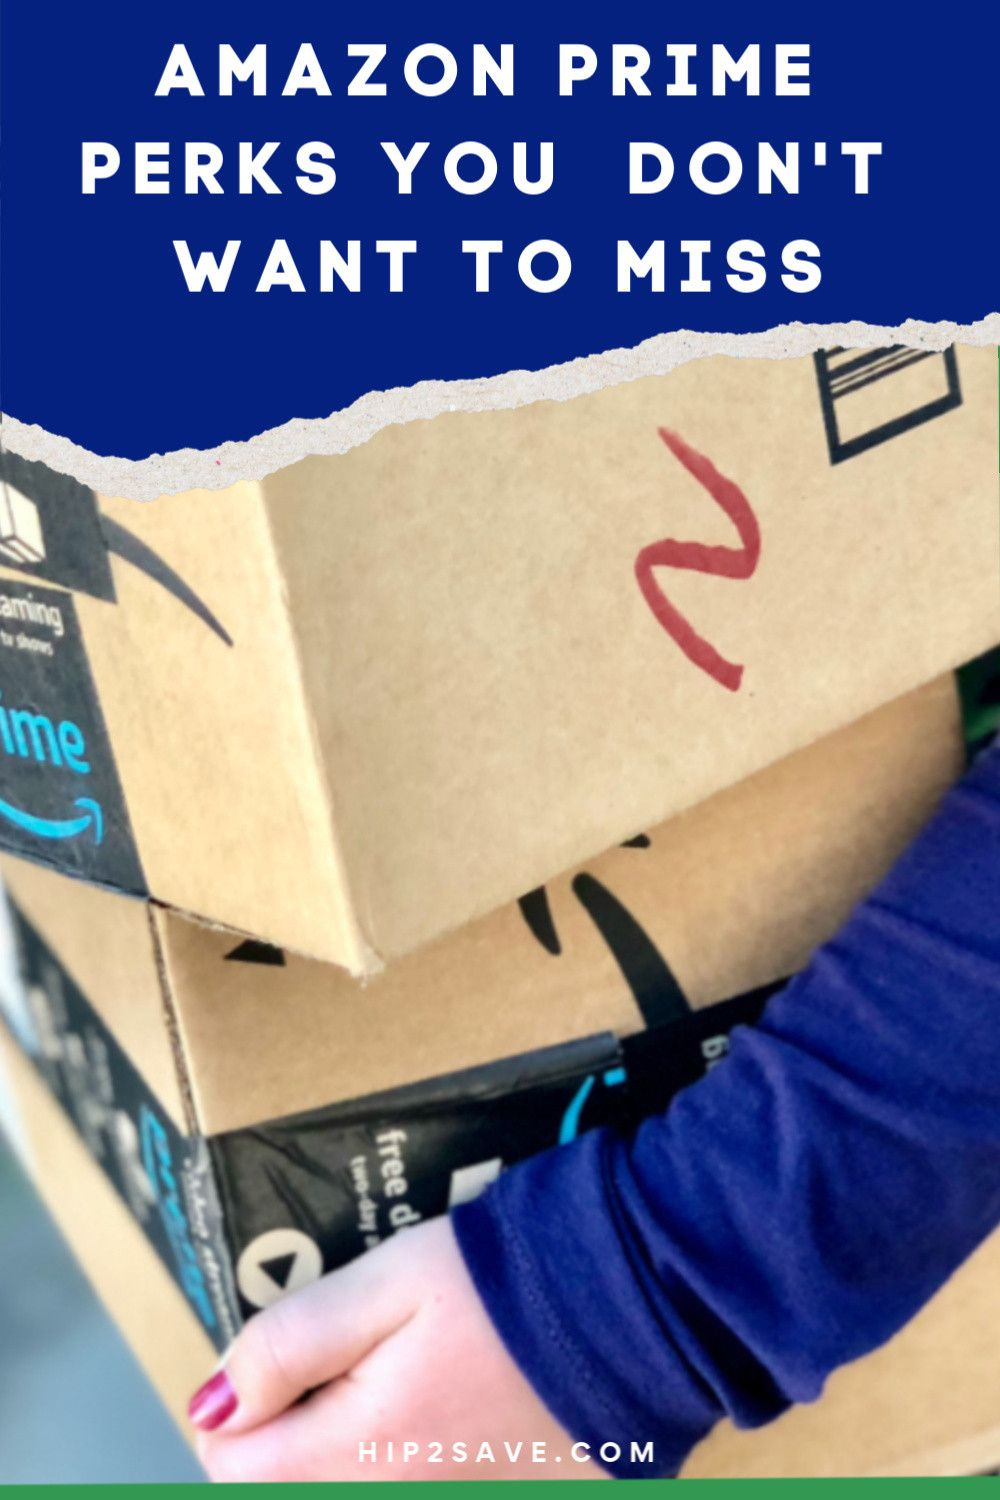 Get the most out of your Amazon Prime membership! When you